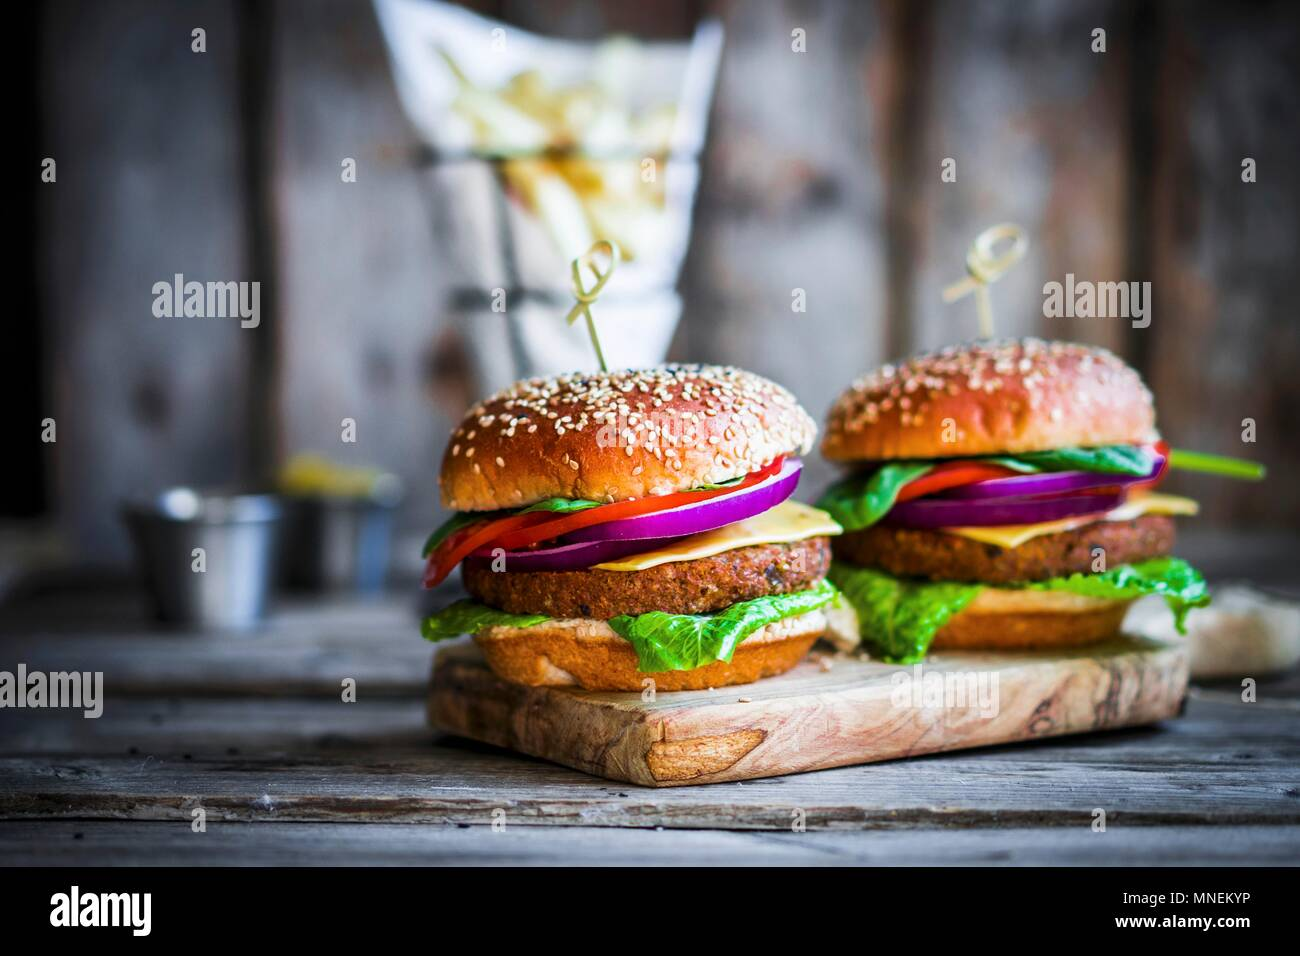 Homemade burgers on rustic wooden surface - Stock Image